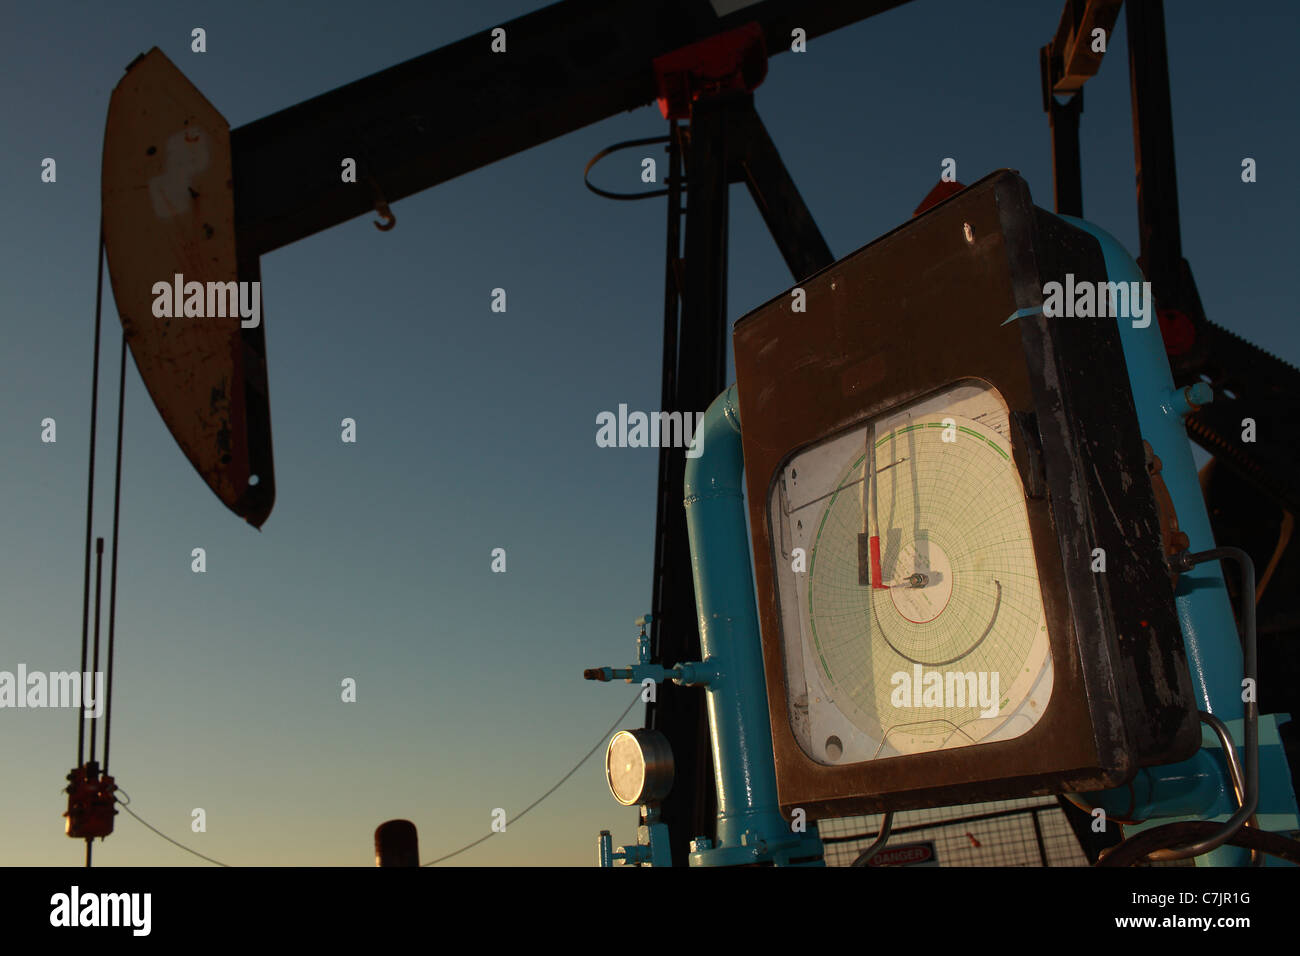 Close up of gauge on oil pump - Stock Image